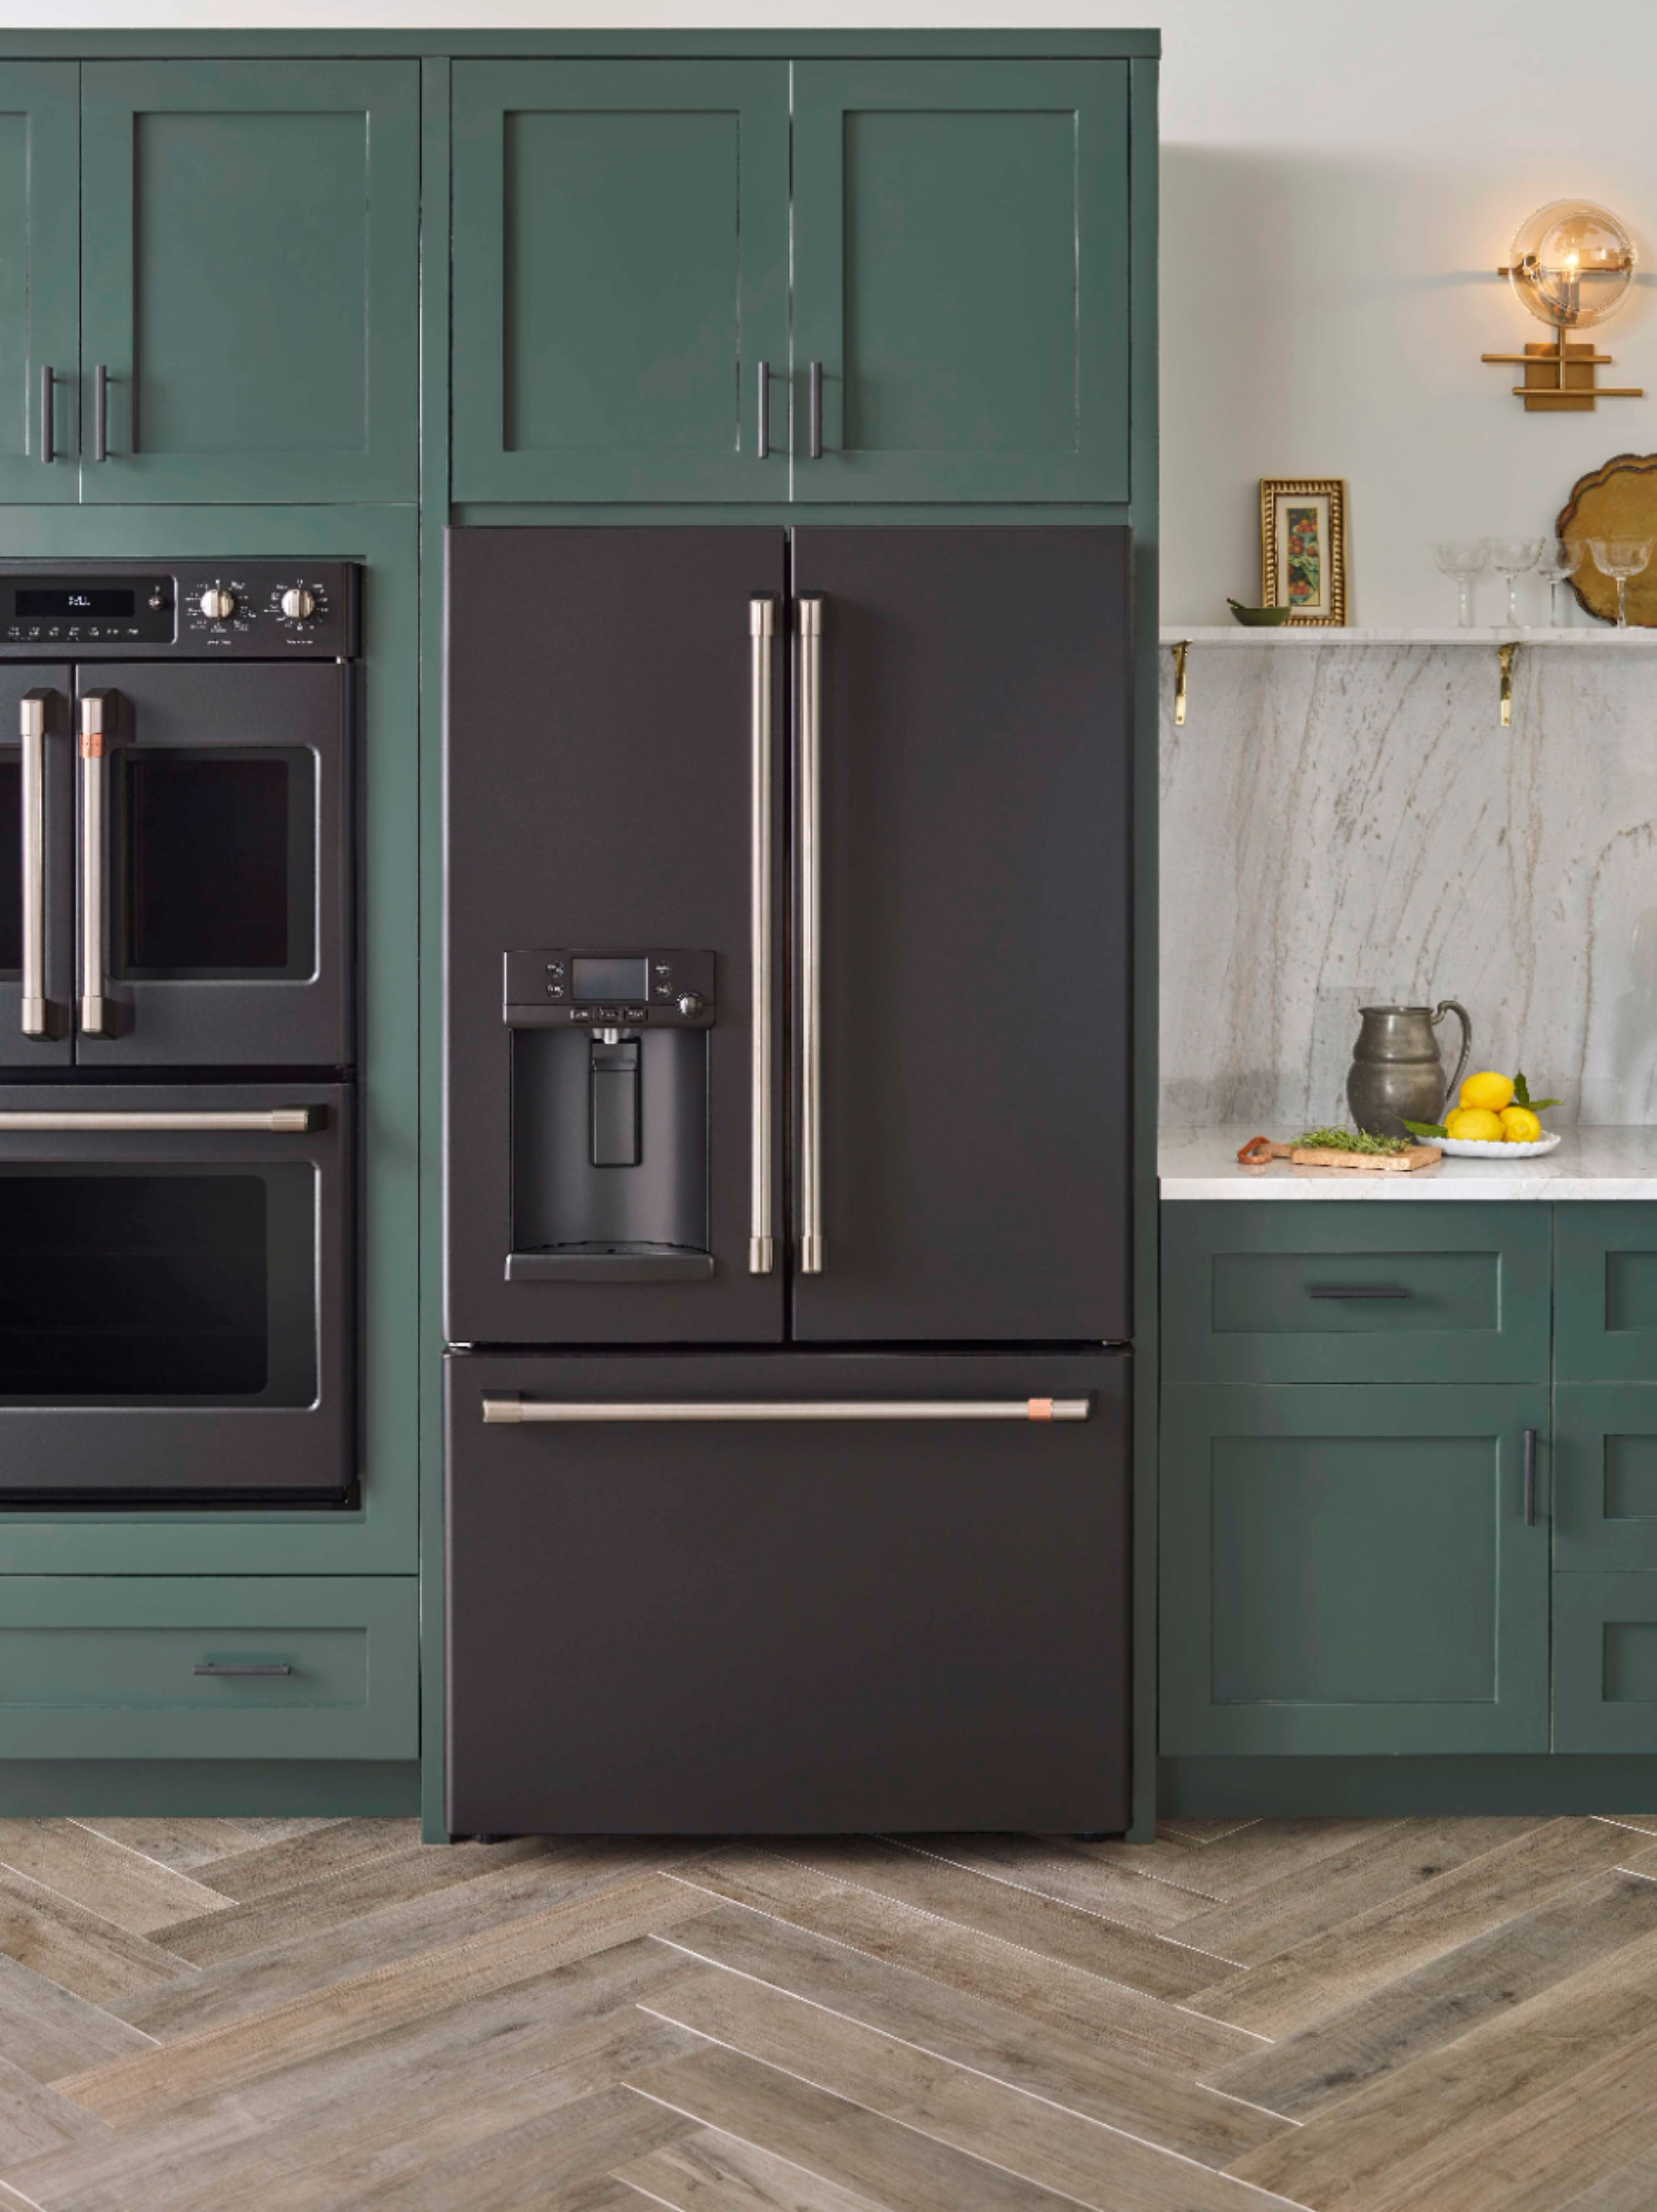 Cafe Matte Collection By Ge From Best Buy A More Beautiful Kitchen Kitchen Appliance Trends Green Kitchen Designs Kitchen Trends